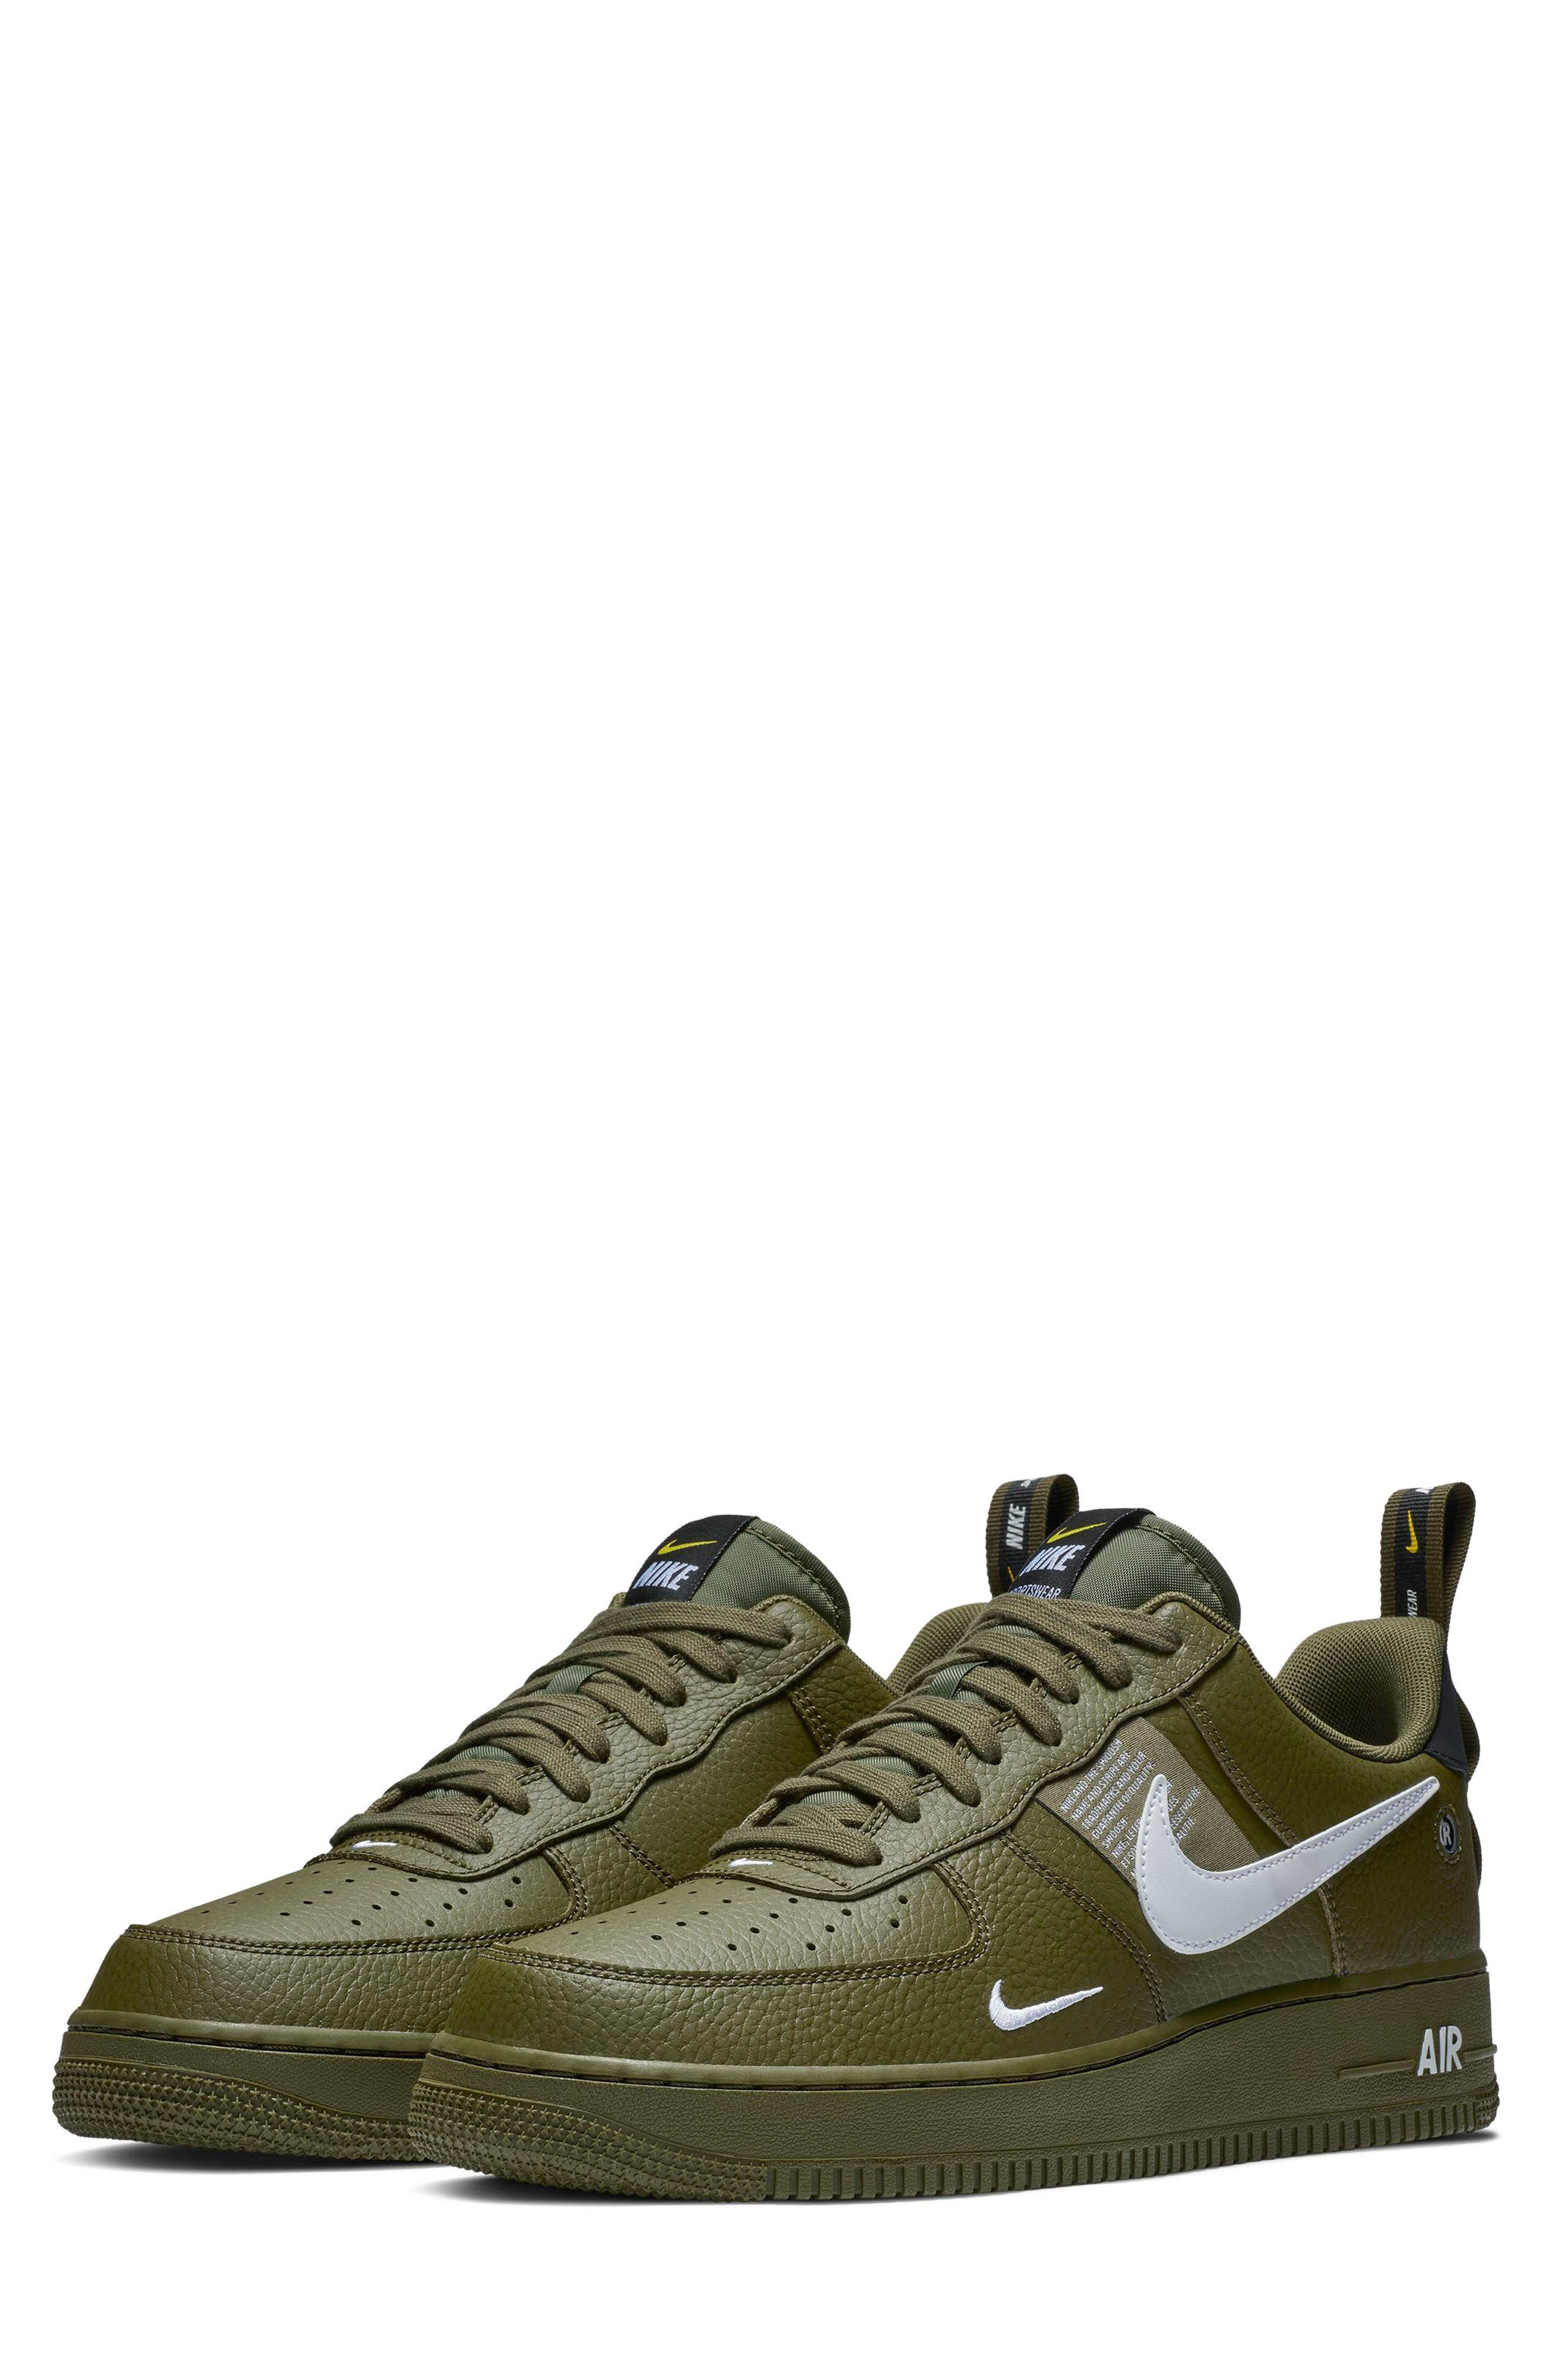 Air Force 1 '07 LV8 Utility Sneaker,                         Main,                         color, 300